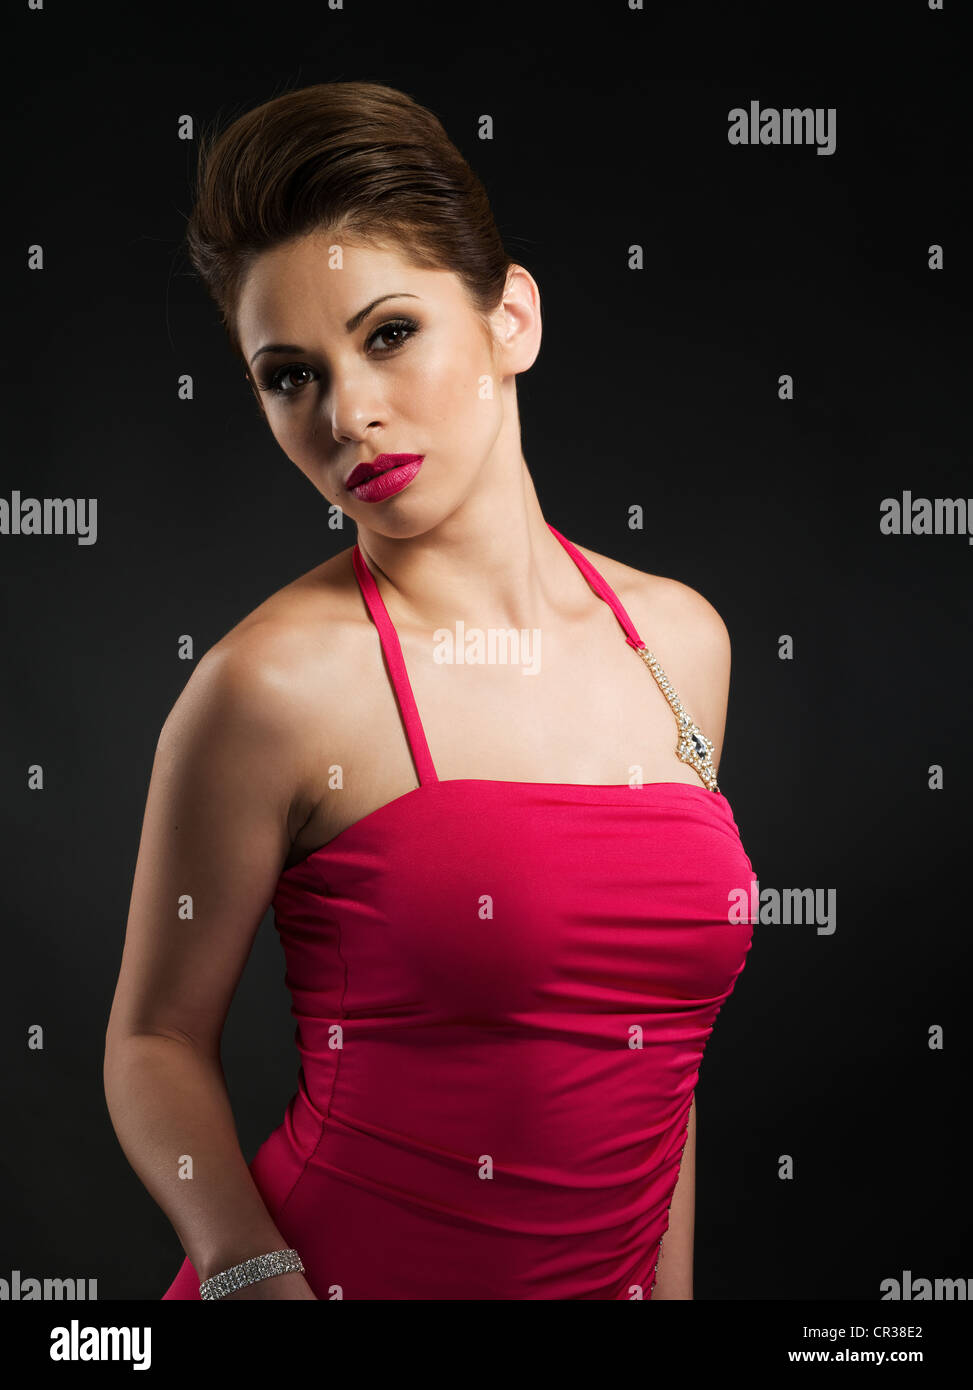 Beautiful woman in pink / red cocktail dress Stock Photo, Royalty ...